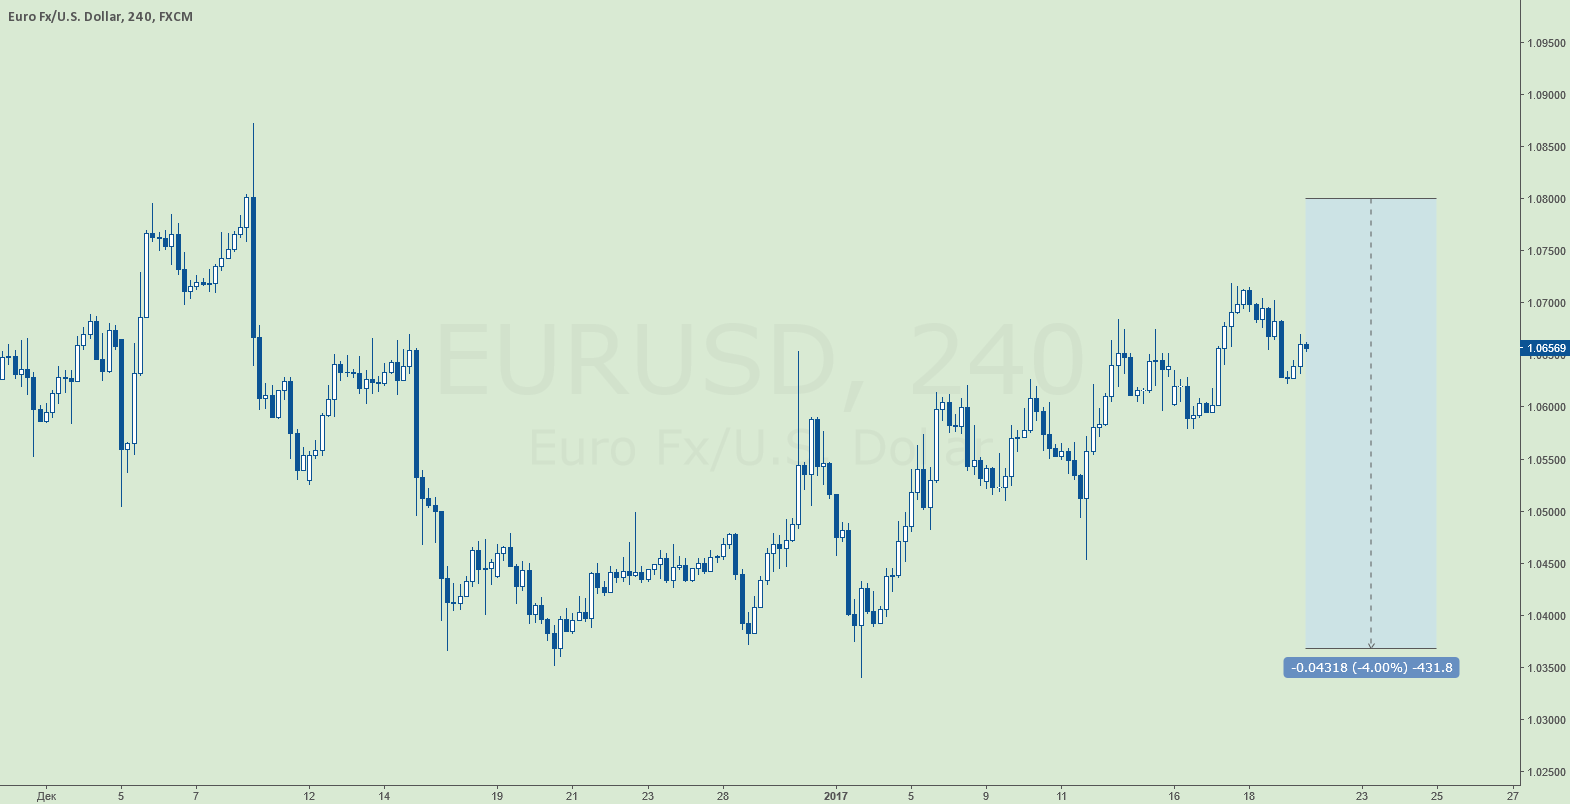 EURUSD [Sell limit]